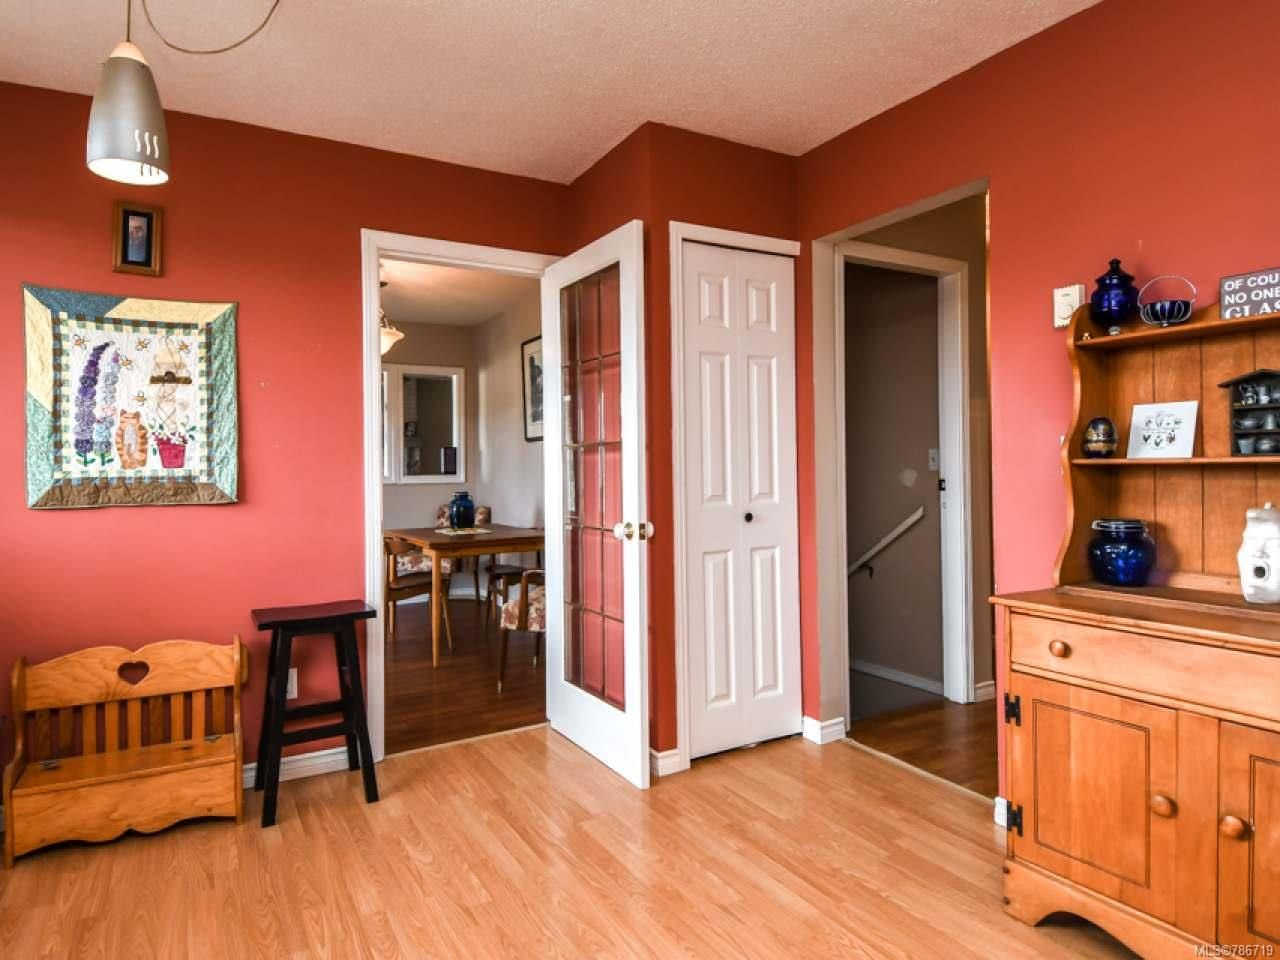 Photo 9: Photos: 1234 Denis Rd in CAMPBELL RIVER: CR Campbell River Central House for sale (Campbell River)  : MLS®# 786719